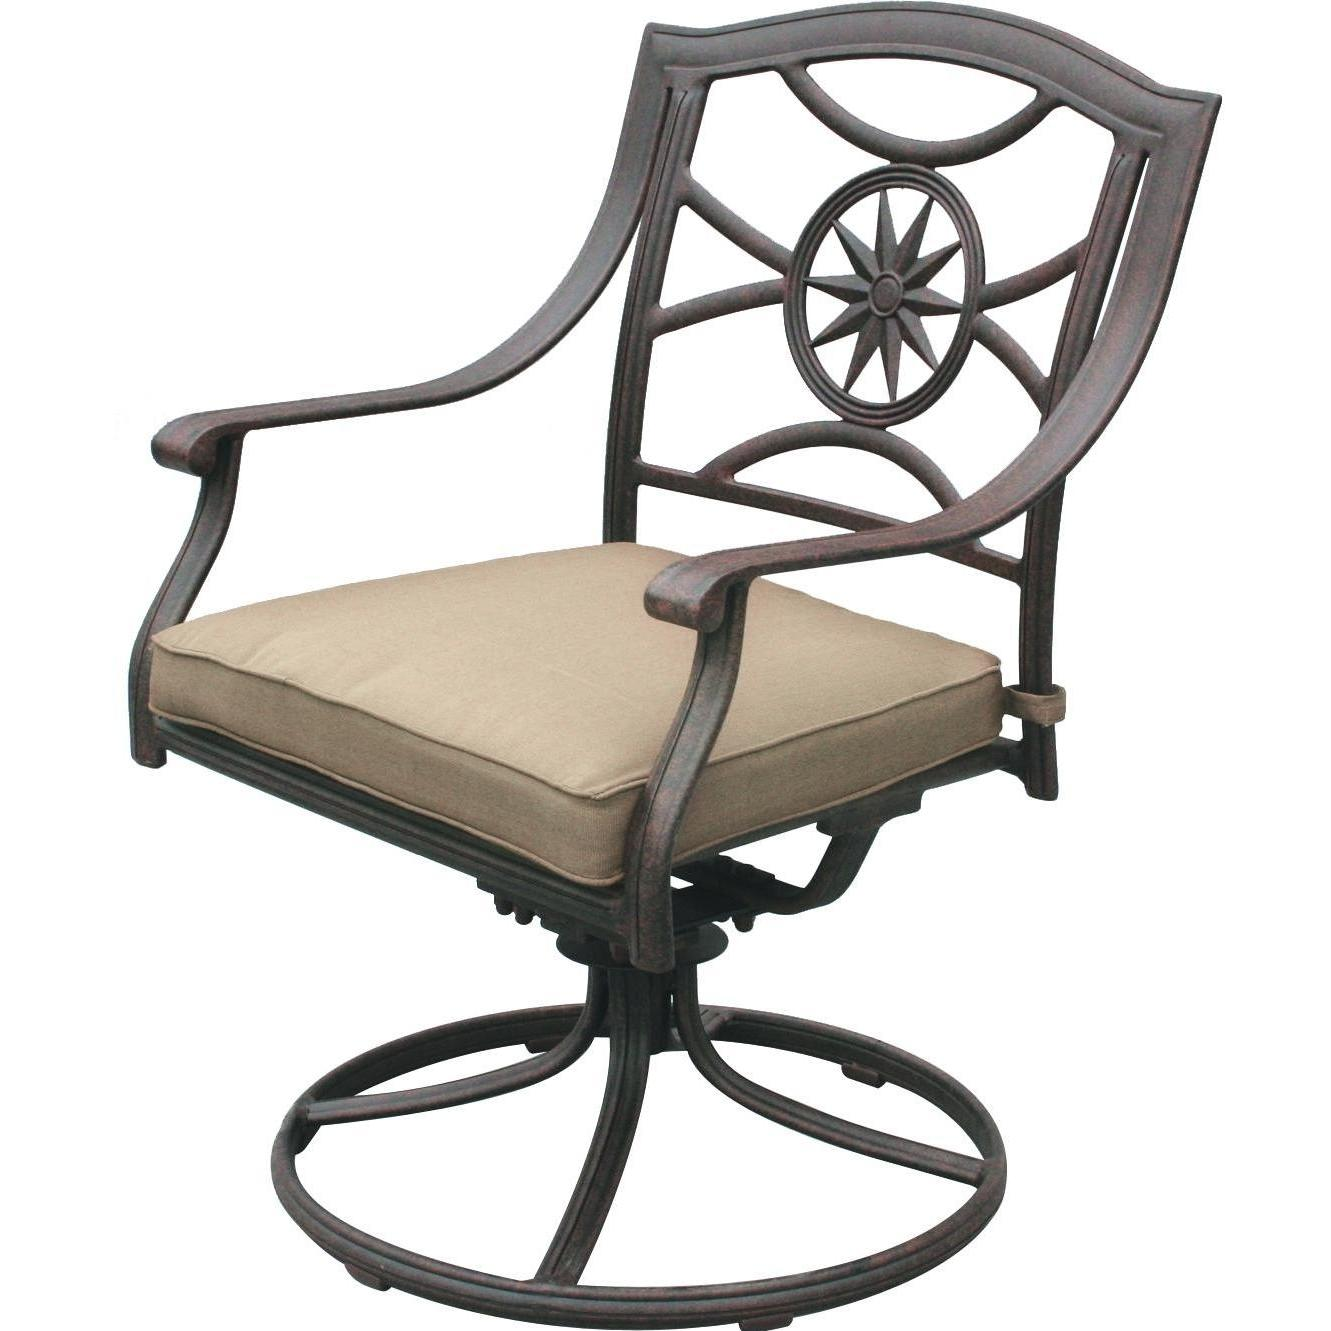 Darlee Ten Star Cast Aluminum Patio Swivel Rocker Dining Chair - Antique Bronze